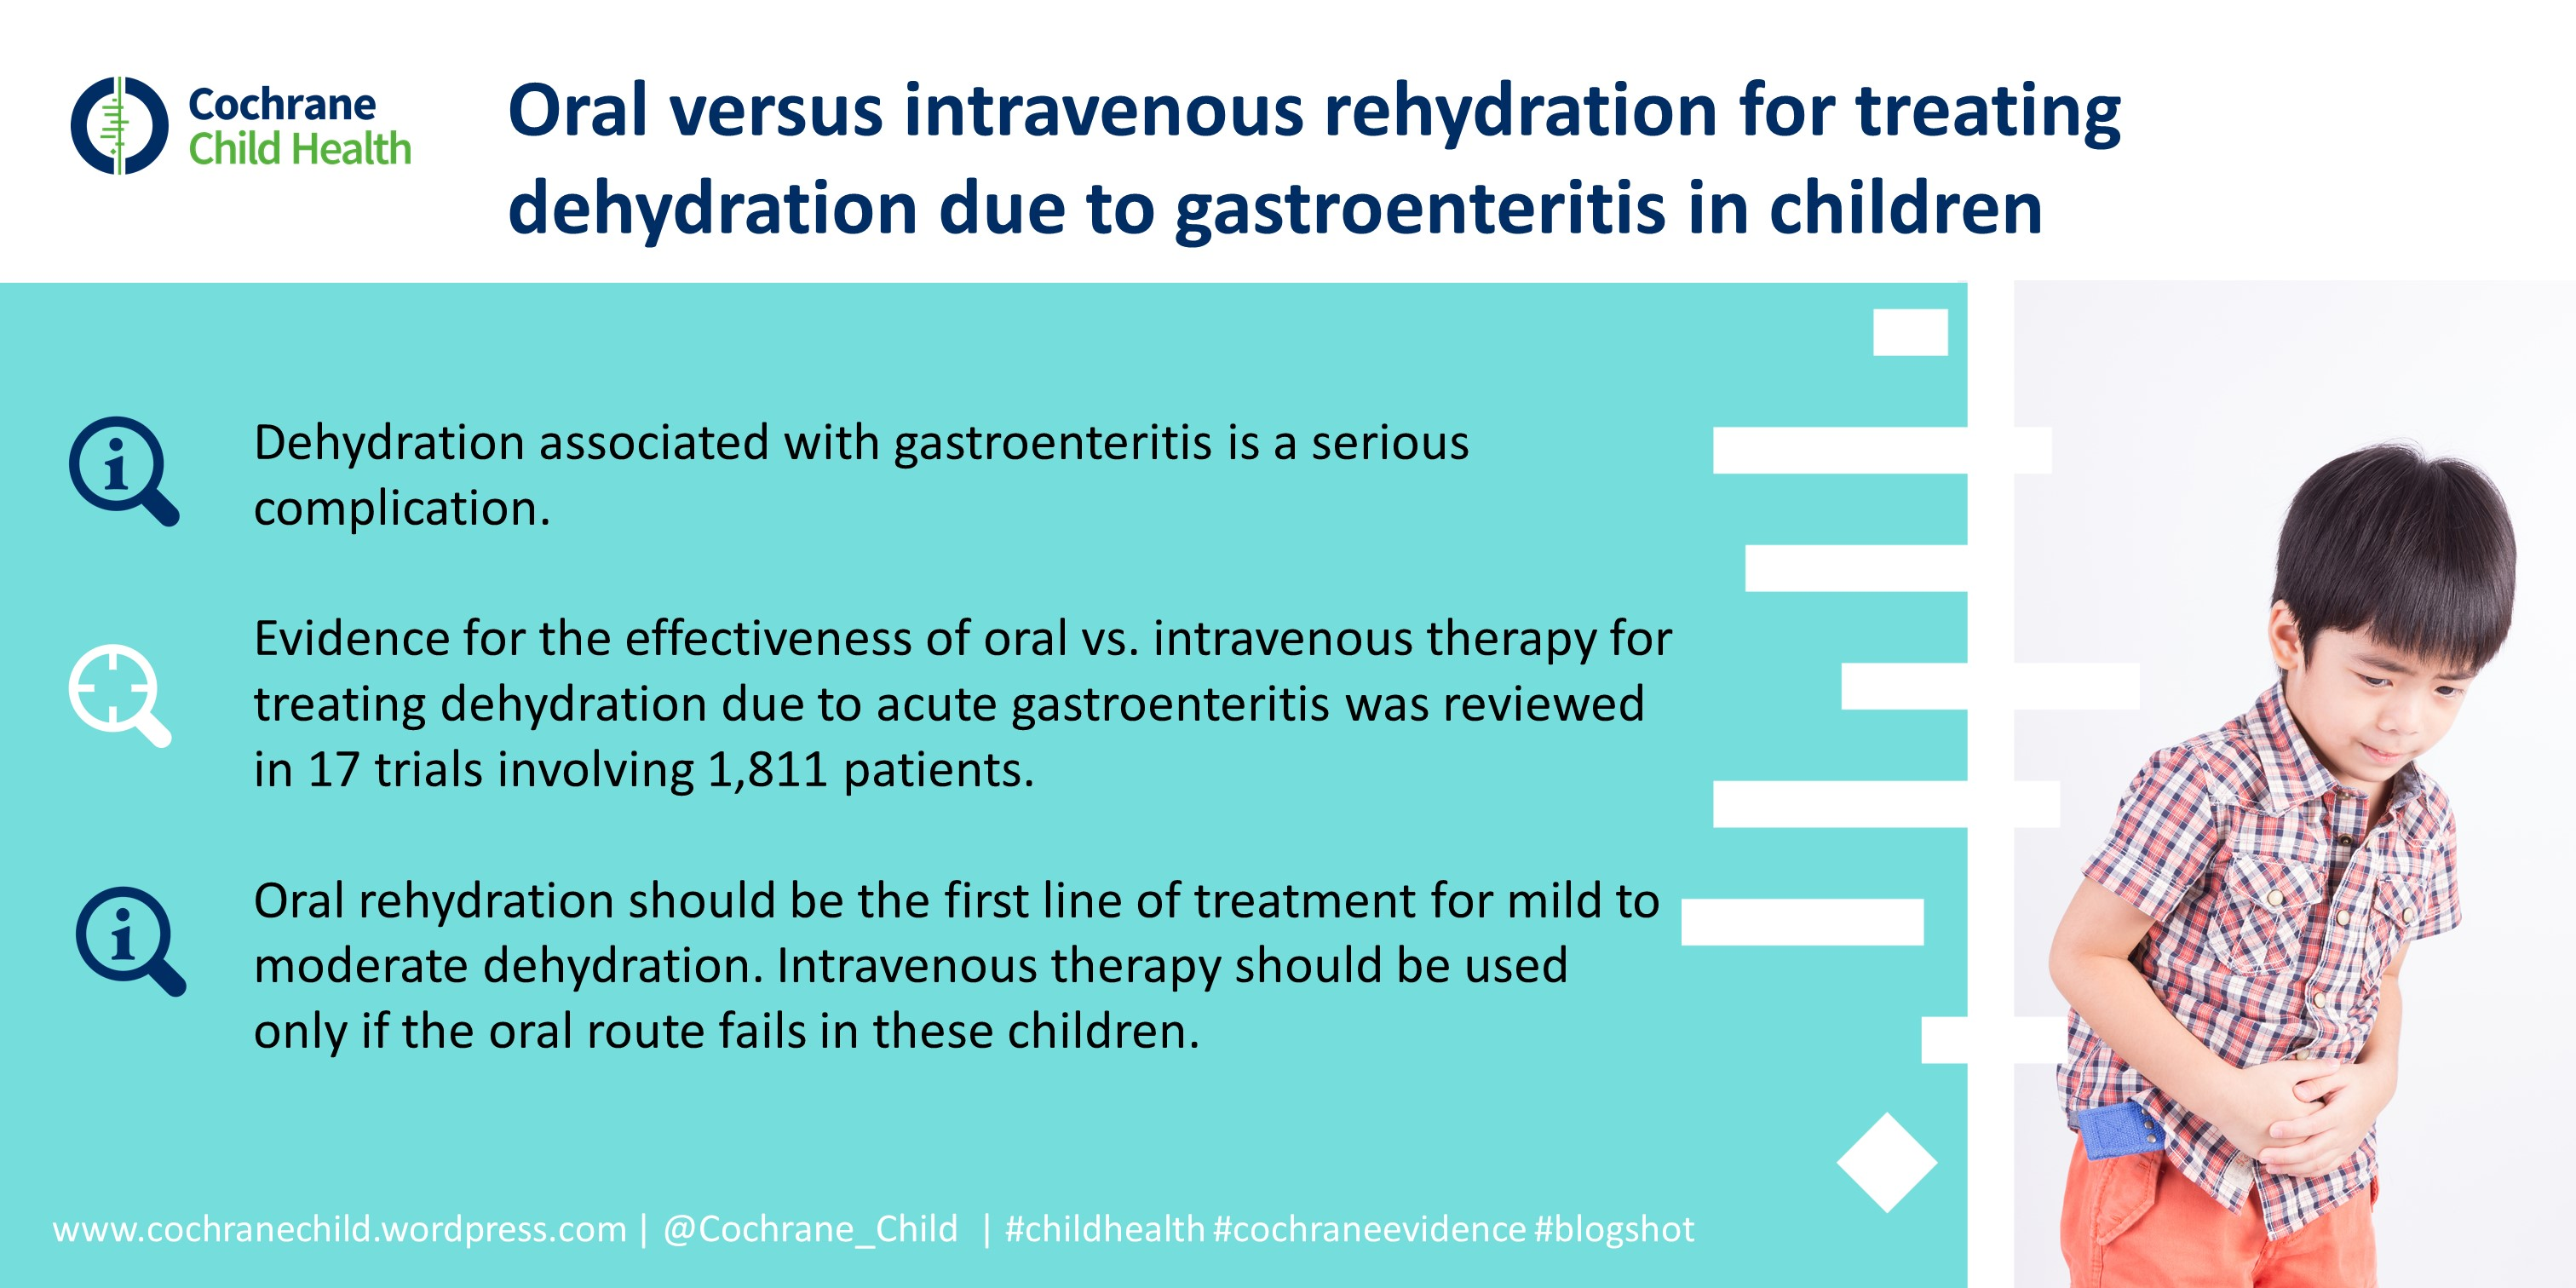 Oral Versus Intravenous Rehydration for Treating Dehydration